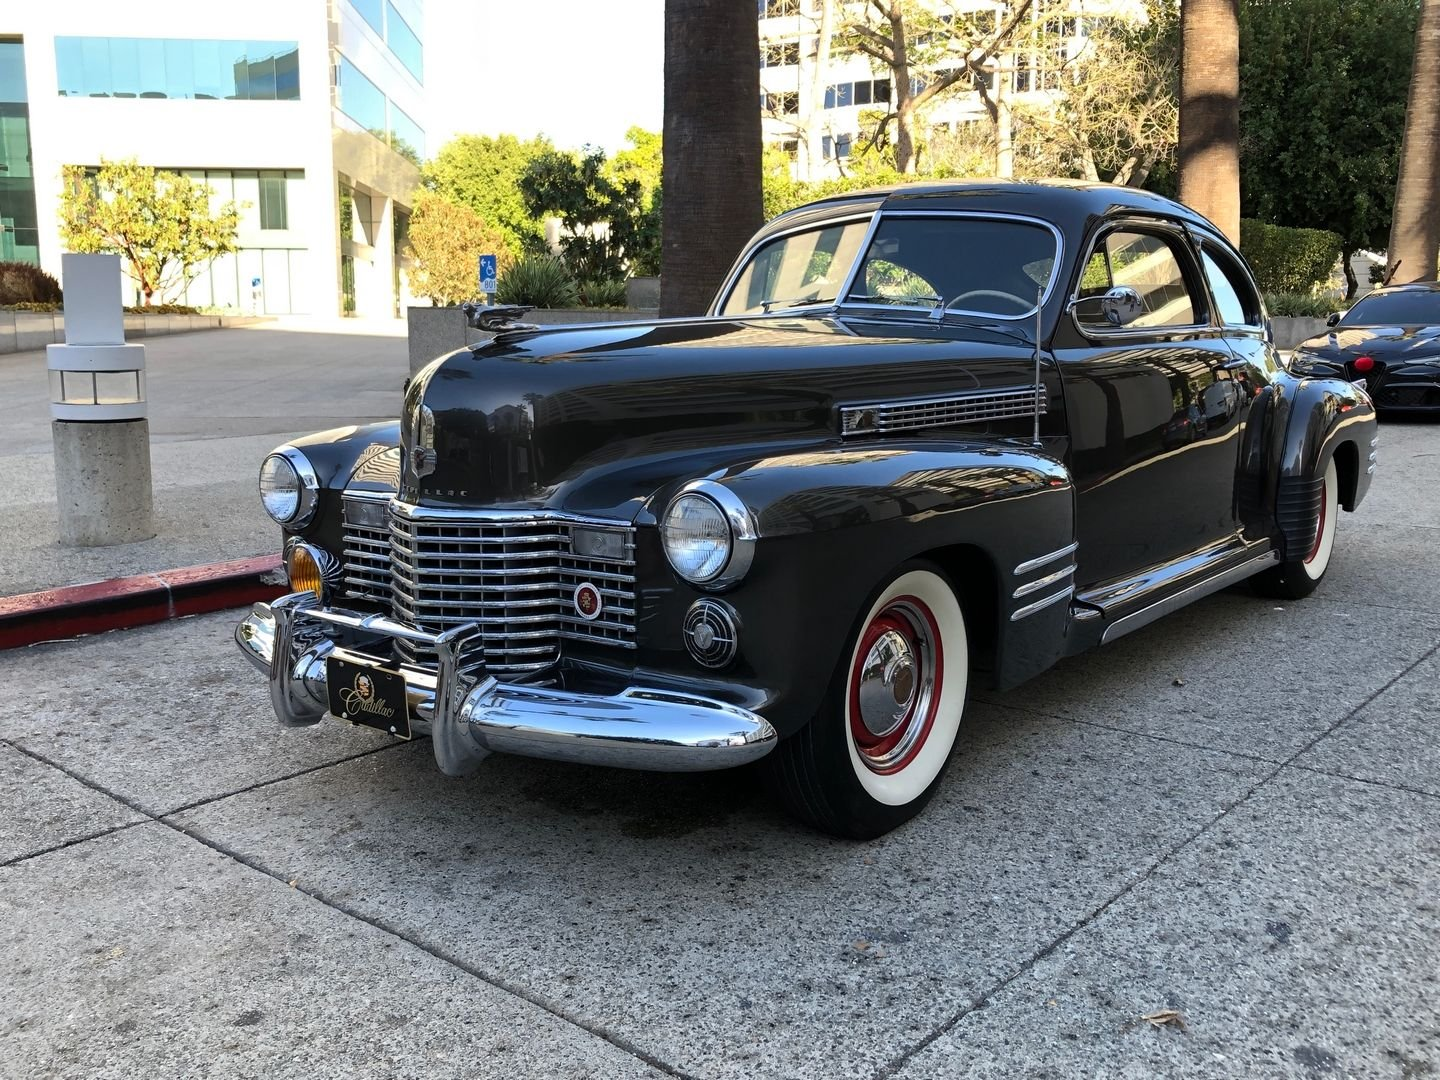 1941 Cadillac Series 61 Fastback Coupe